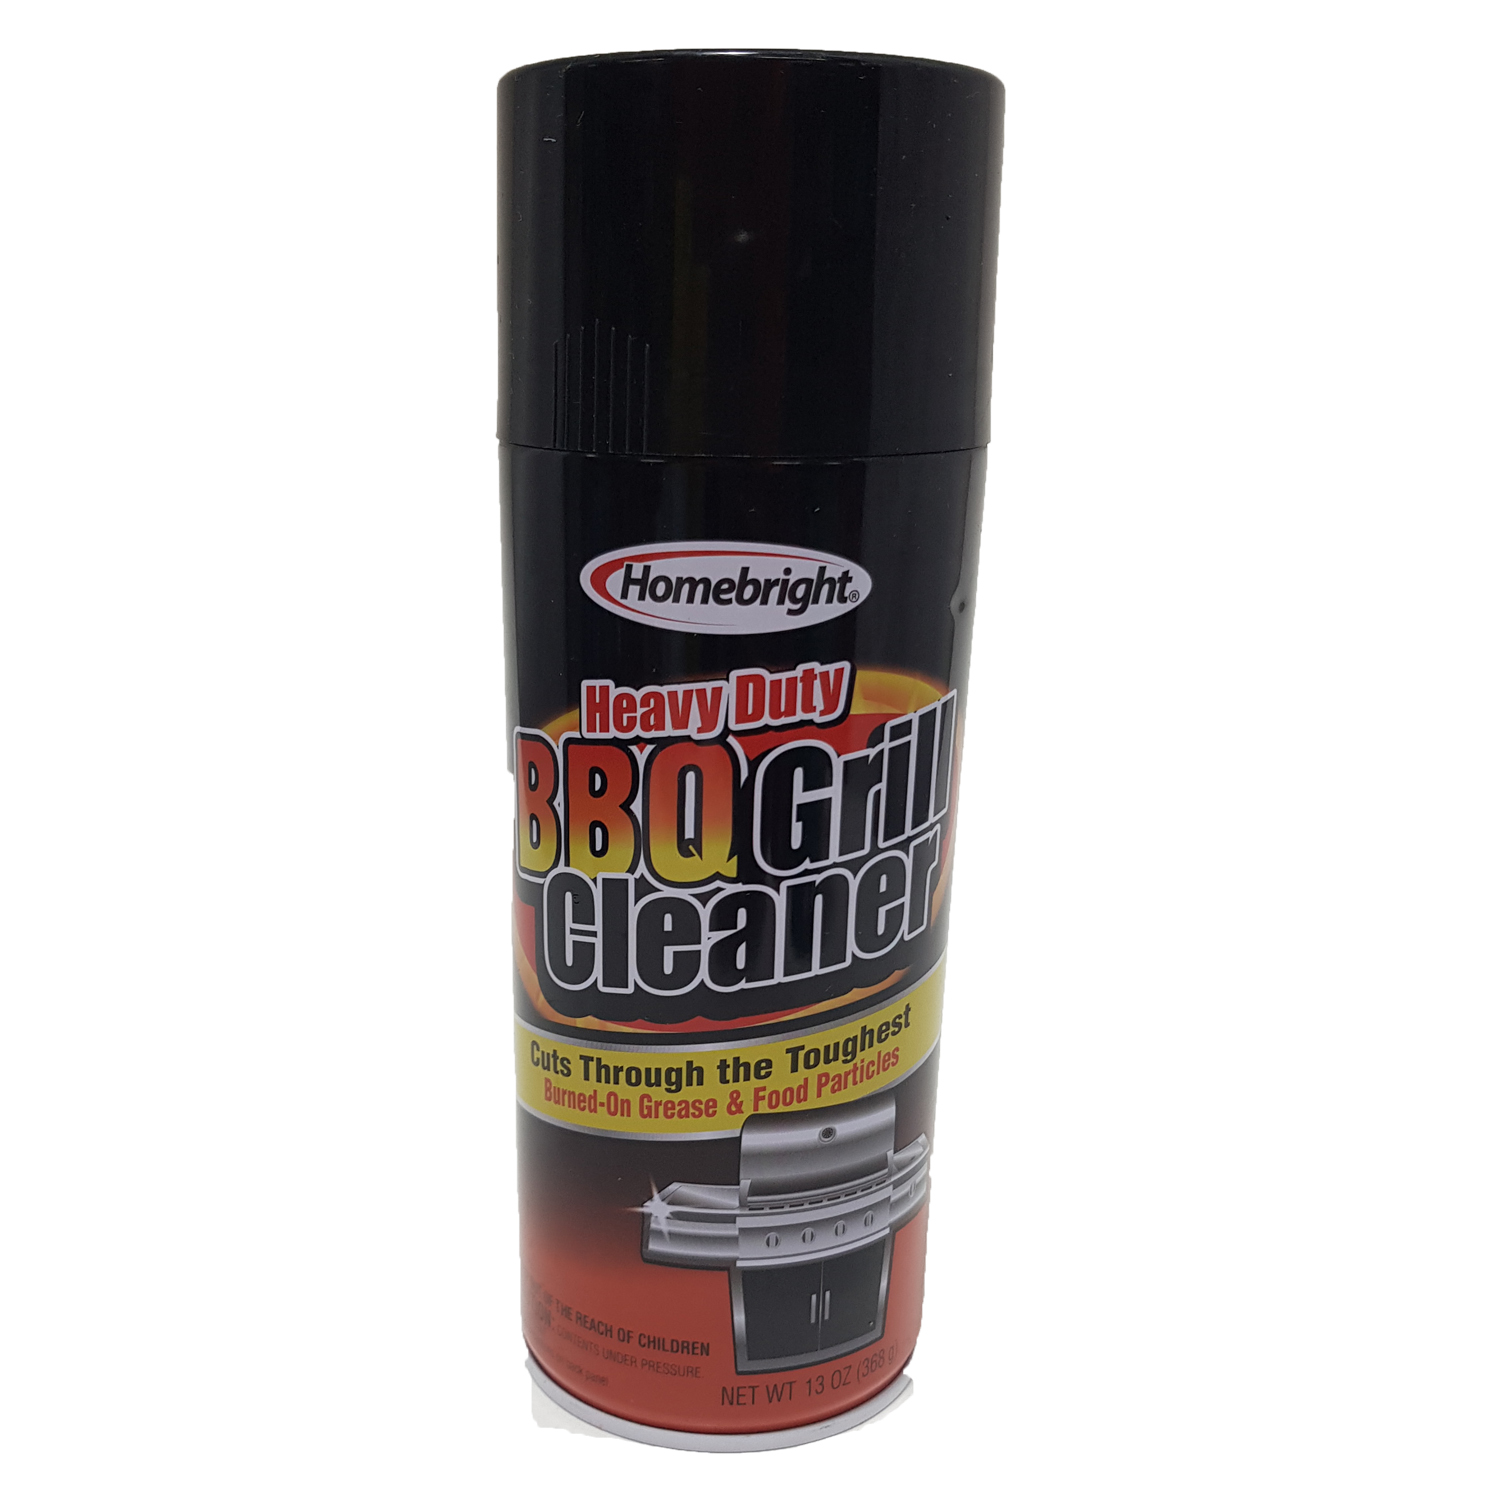 HOMEBRIGHT 13oz Heavy Duty BBQ Grill Cleaner